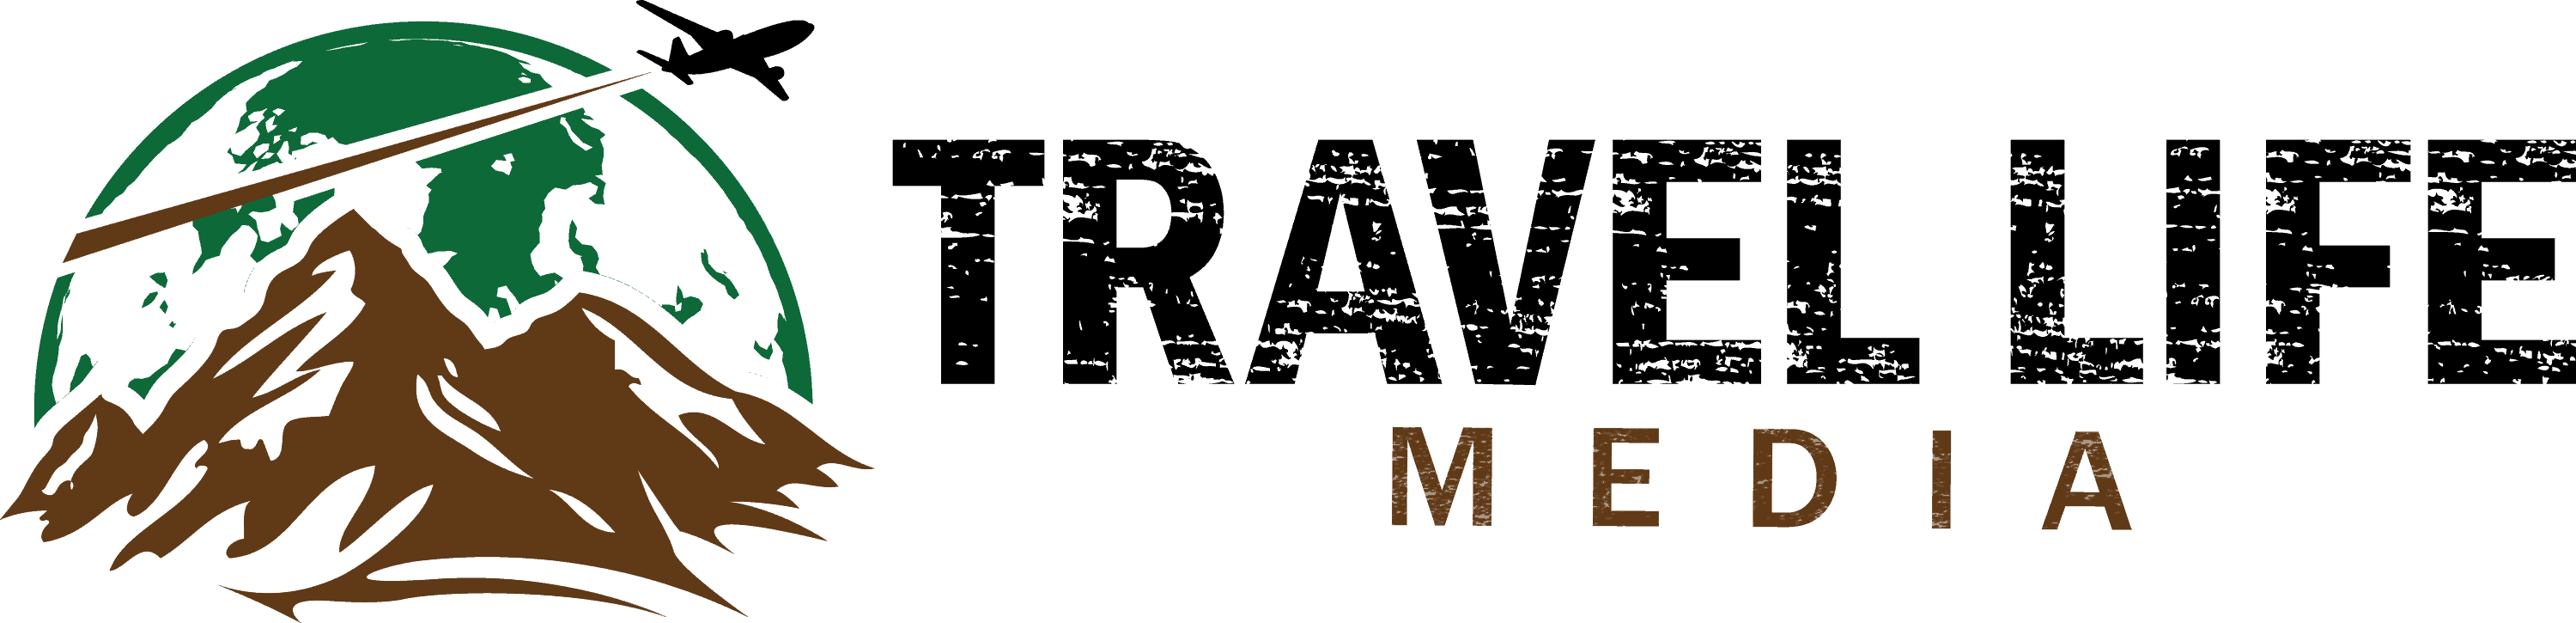 Travel Life Media: Travel and Tourism Marketing That Works